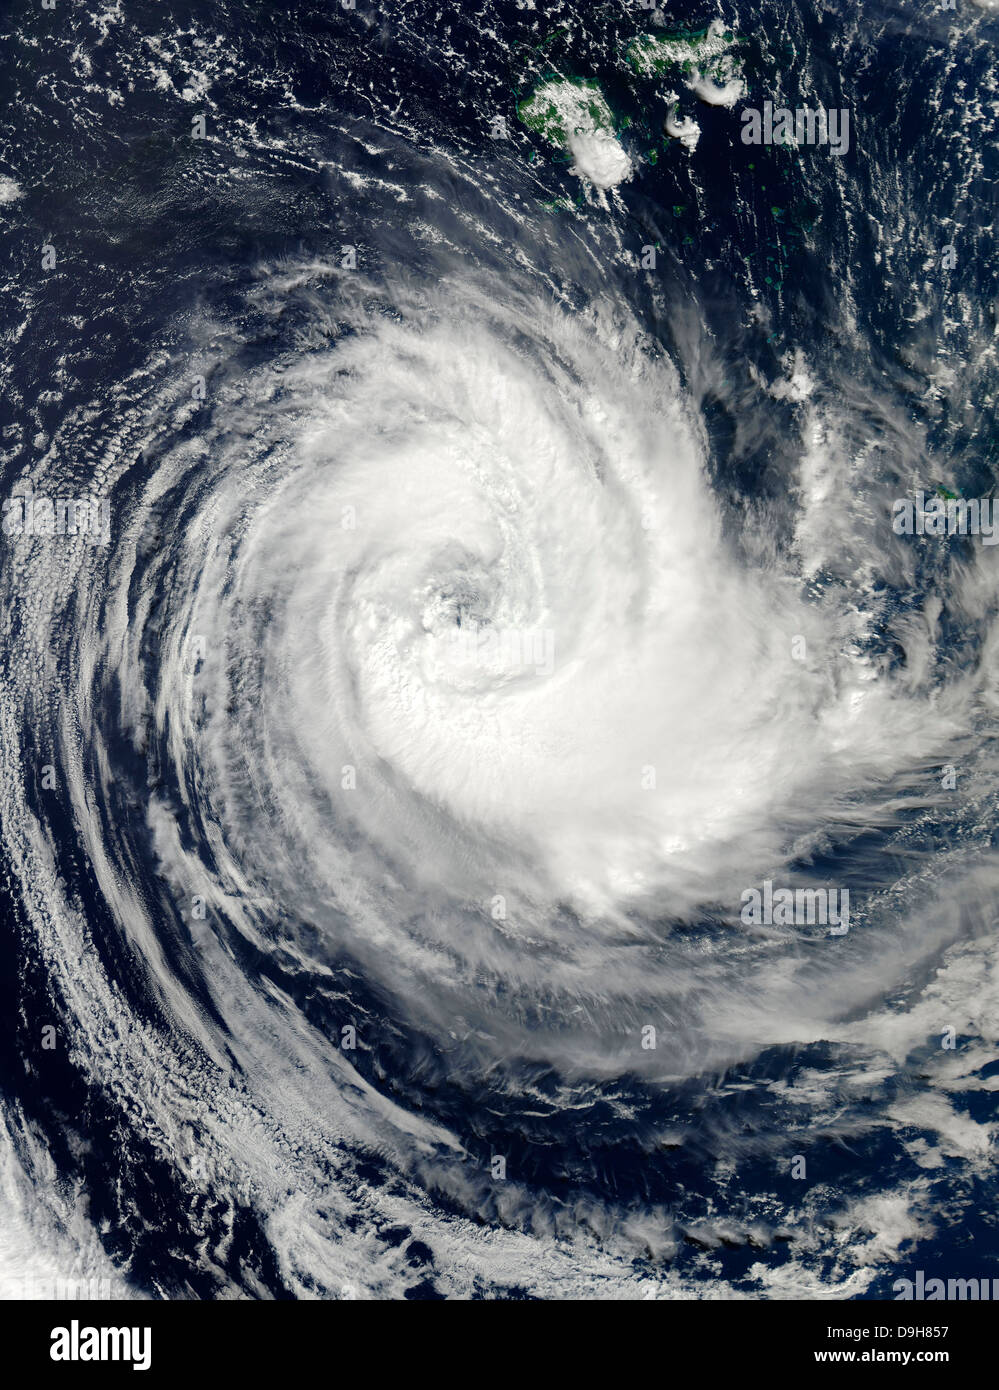 hight resolution of tropical cyclone bune stock image